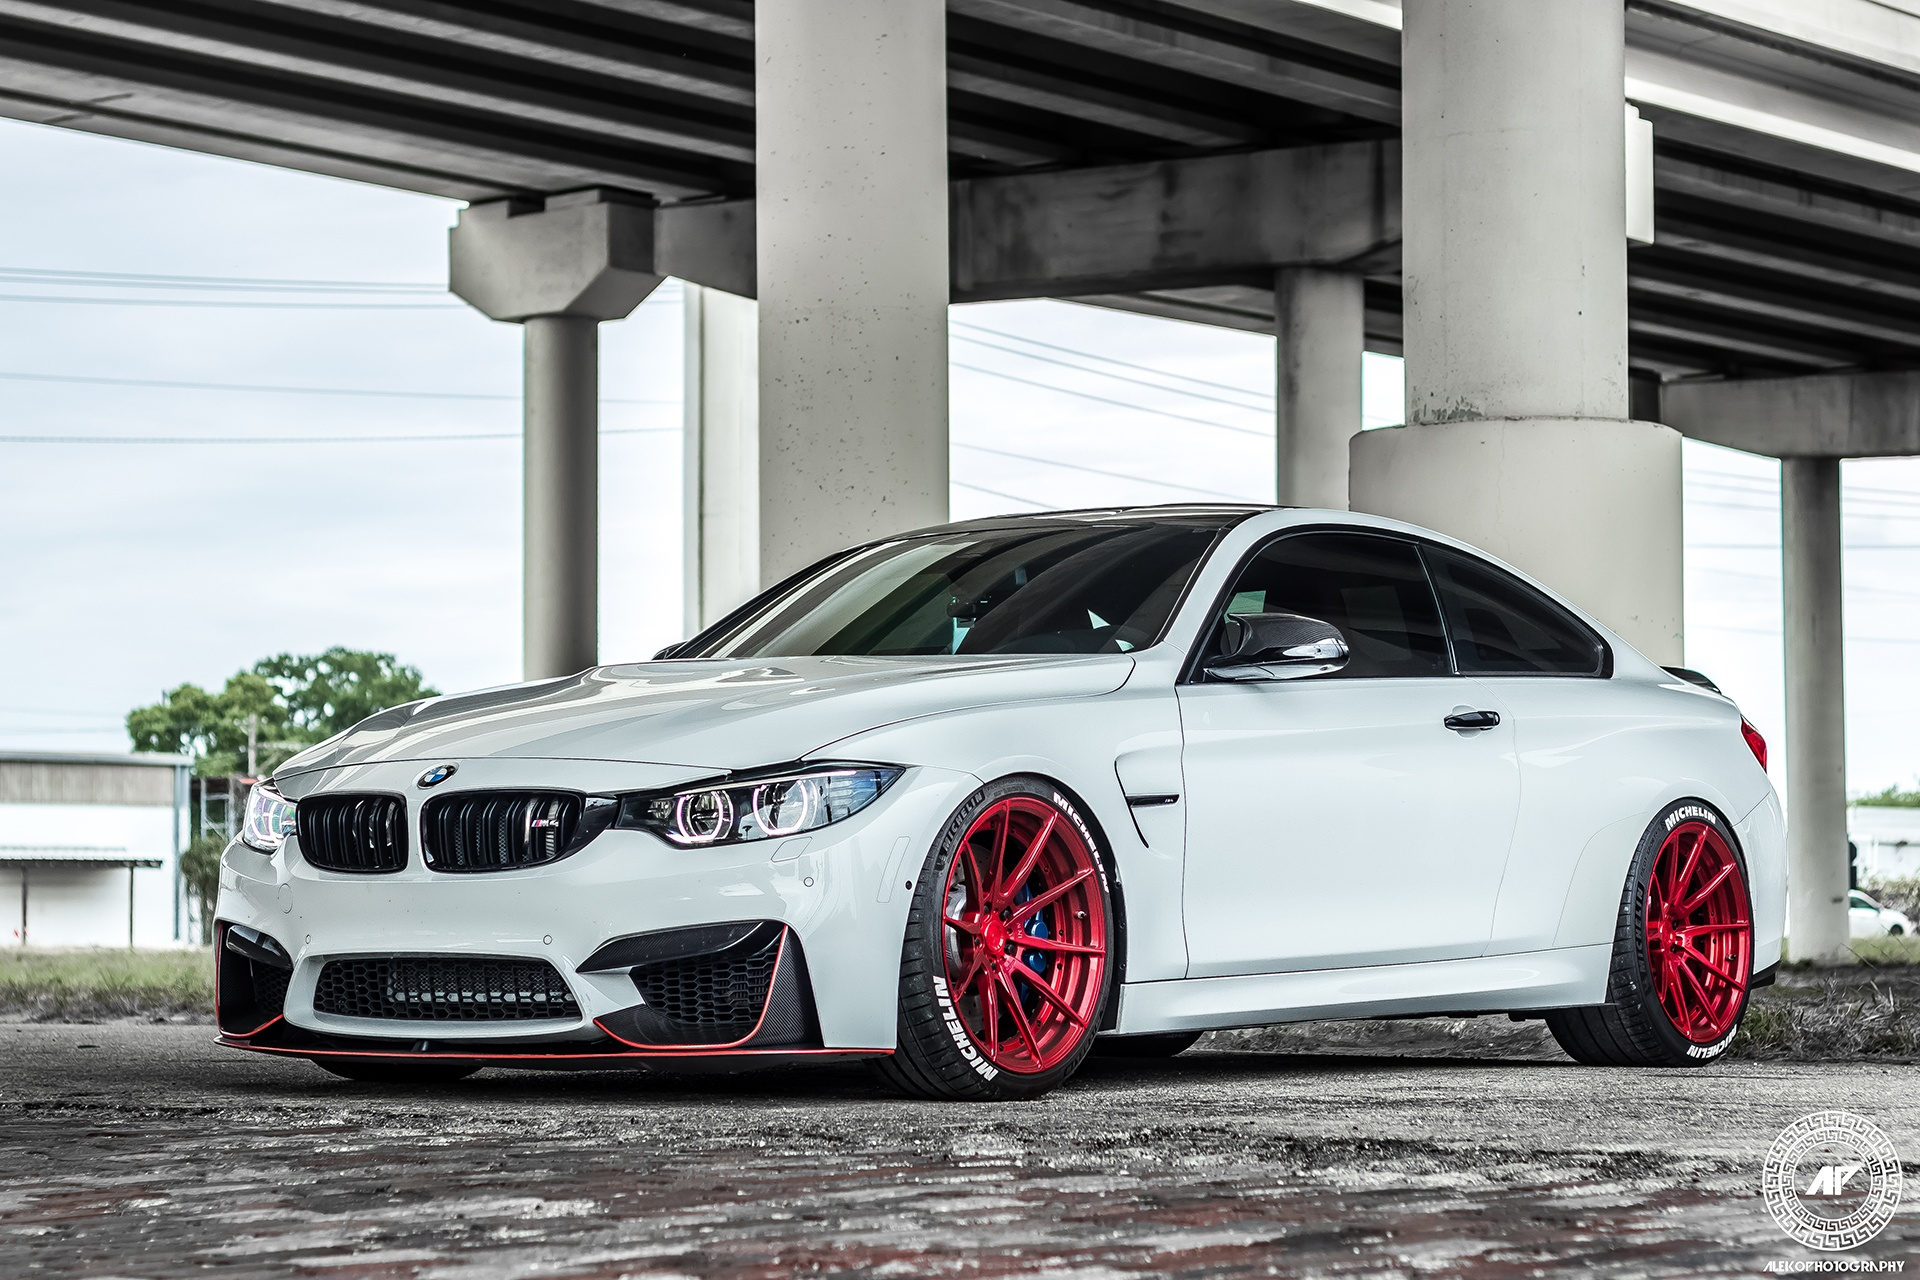 M4 Bmw Modified Awesome Bmw M4 with 702whp and Bright Brushed Red Wheels Of Fresh M4 Bmw Modified